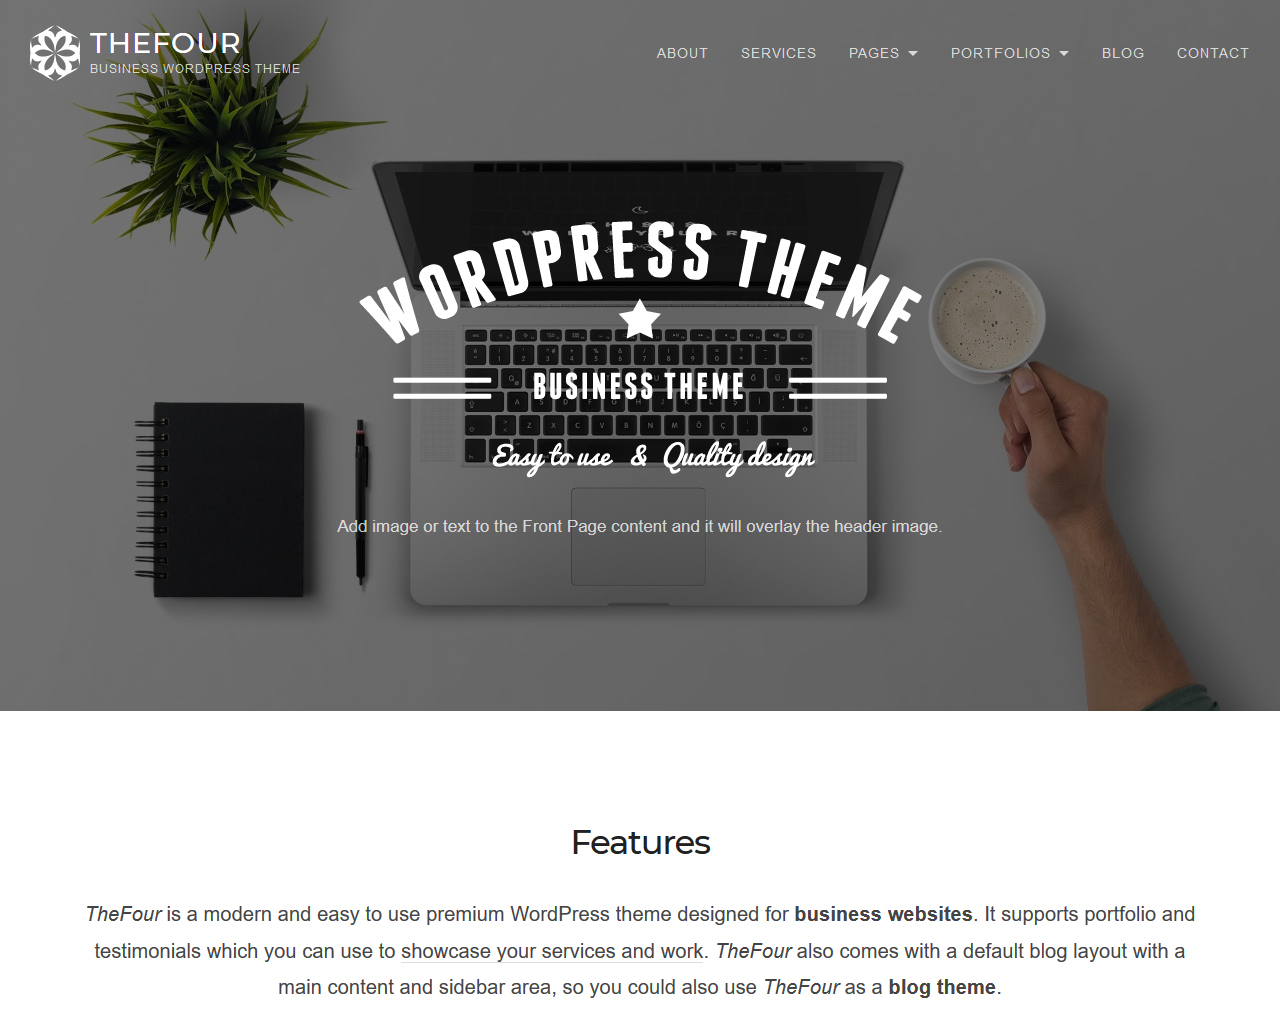 TheFour Business WordPress Theme